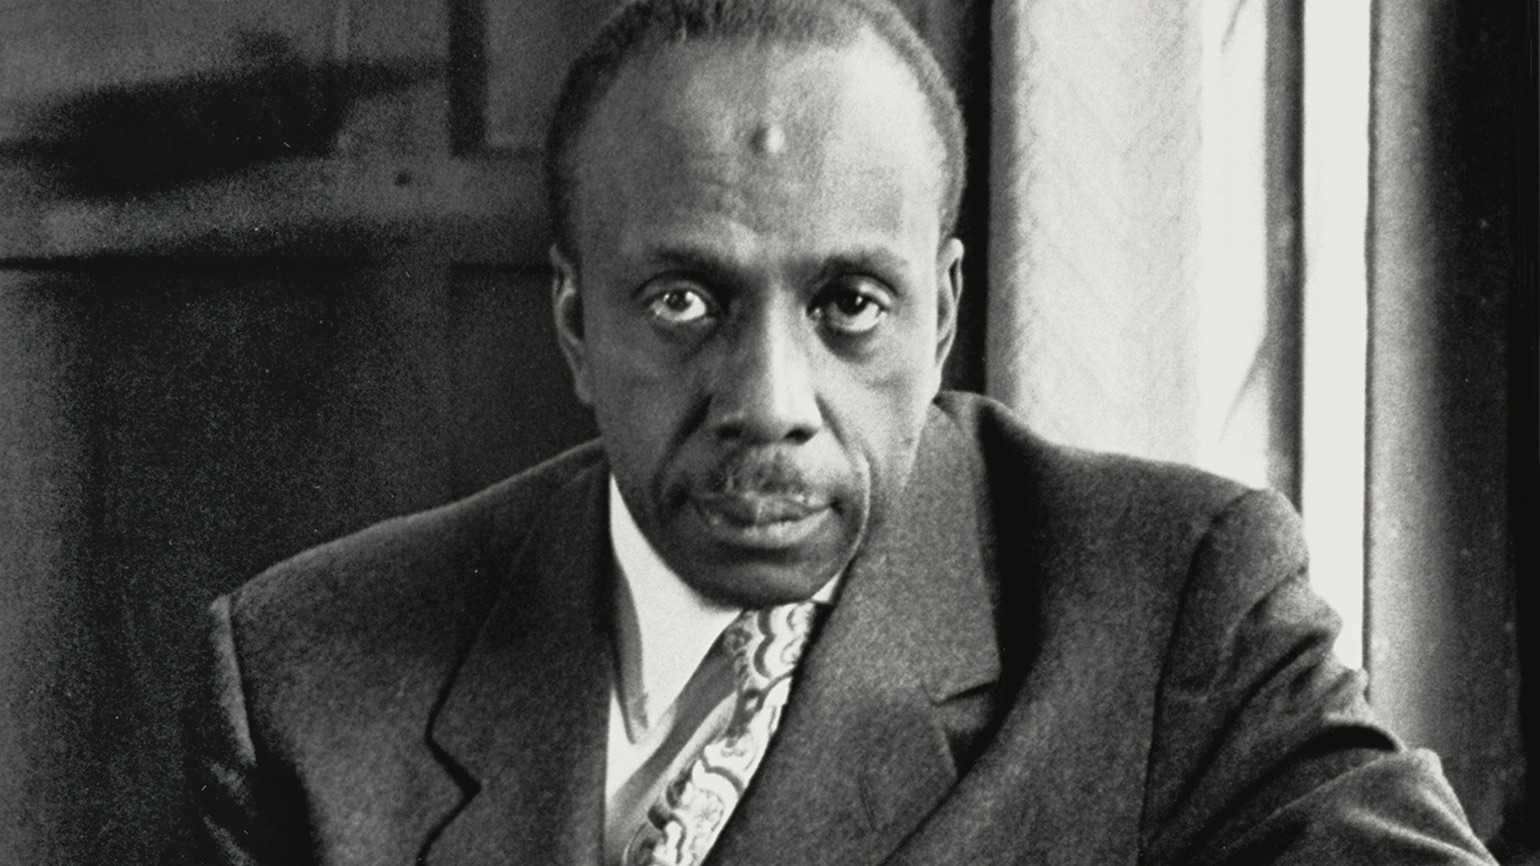 Author, pastor and civil rights leader Howard Thurman